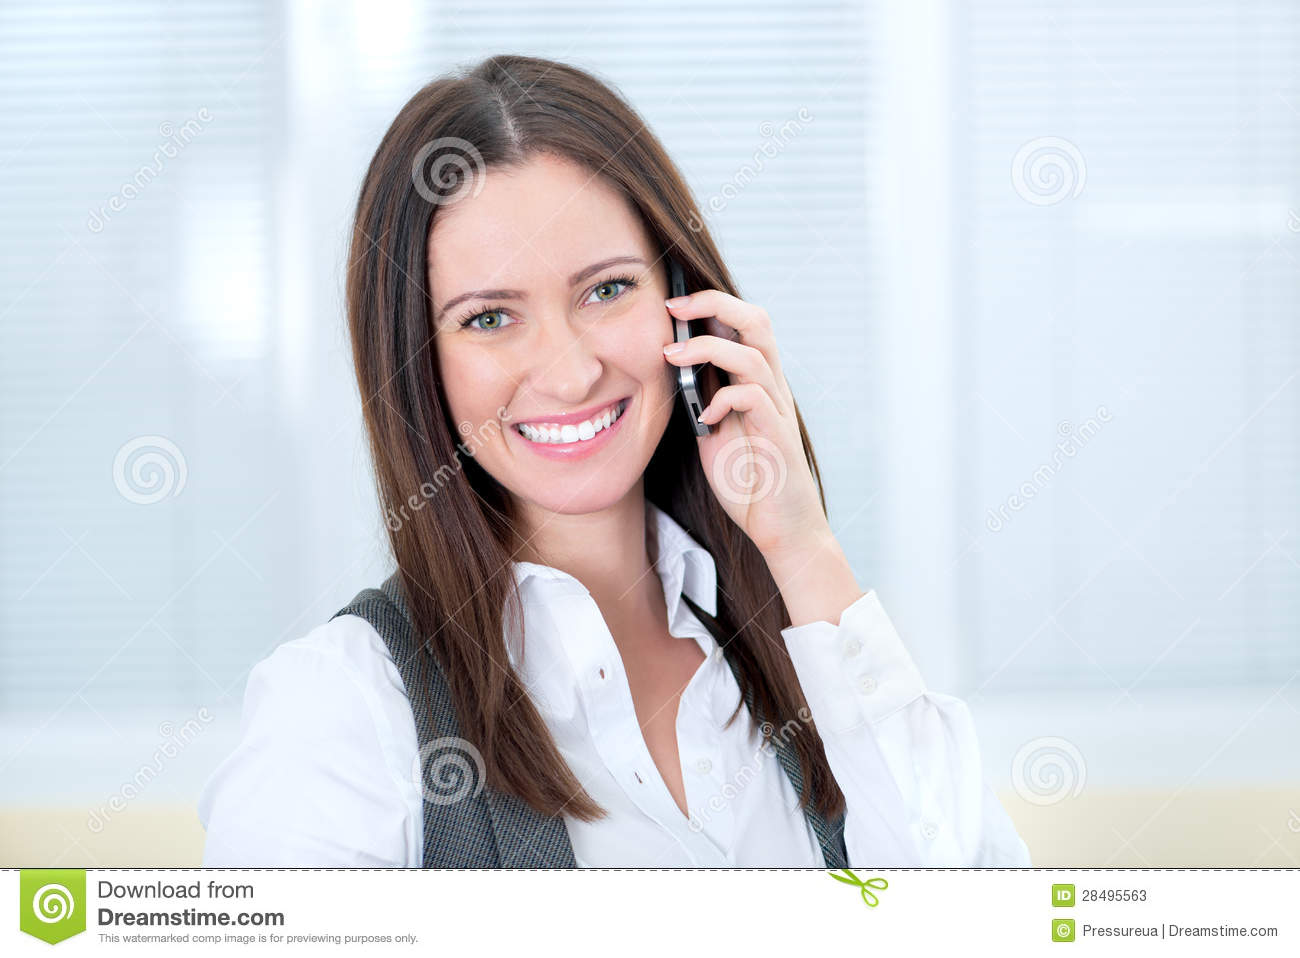 Smiling Business Lady With Mobile Phone Stock Photos   Image  28495563